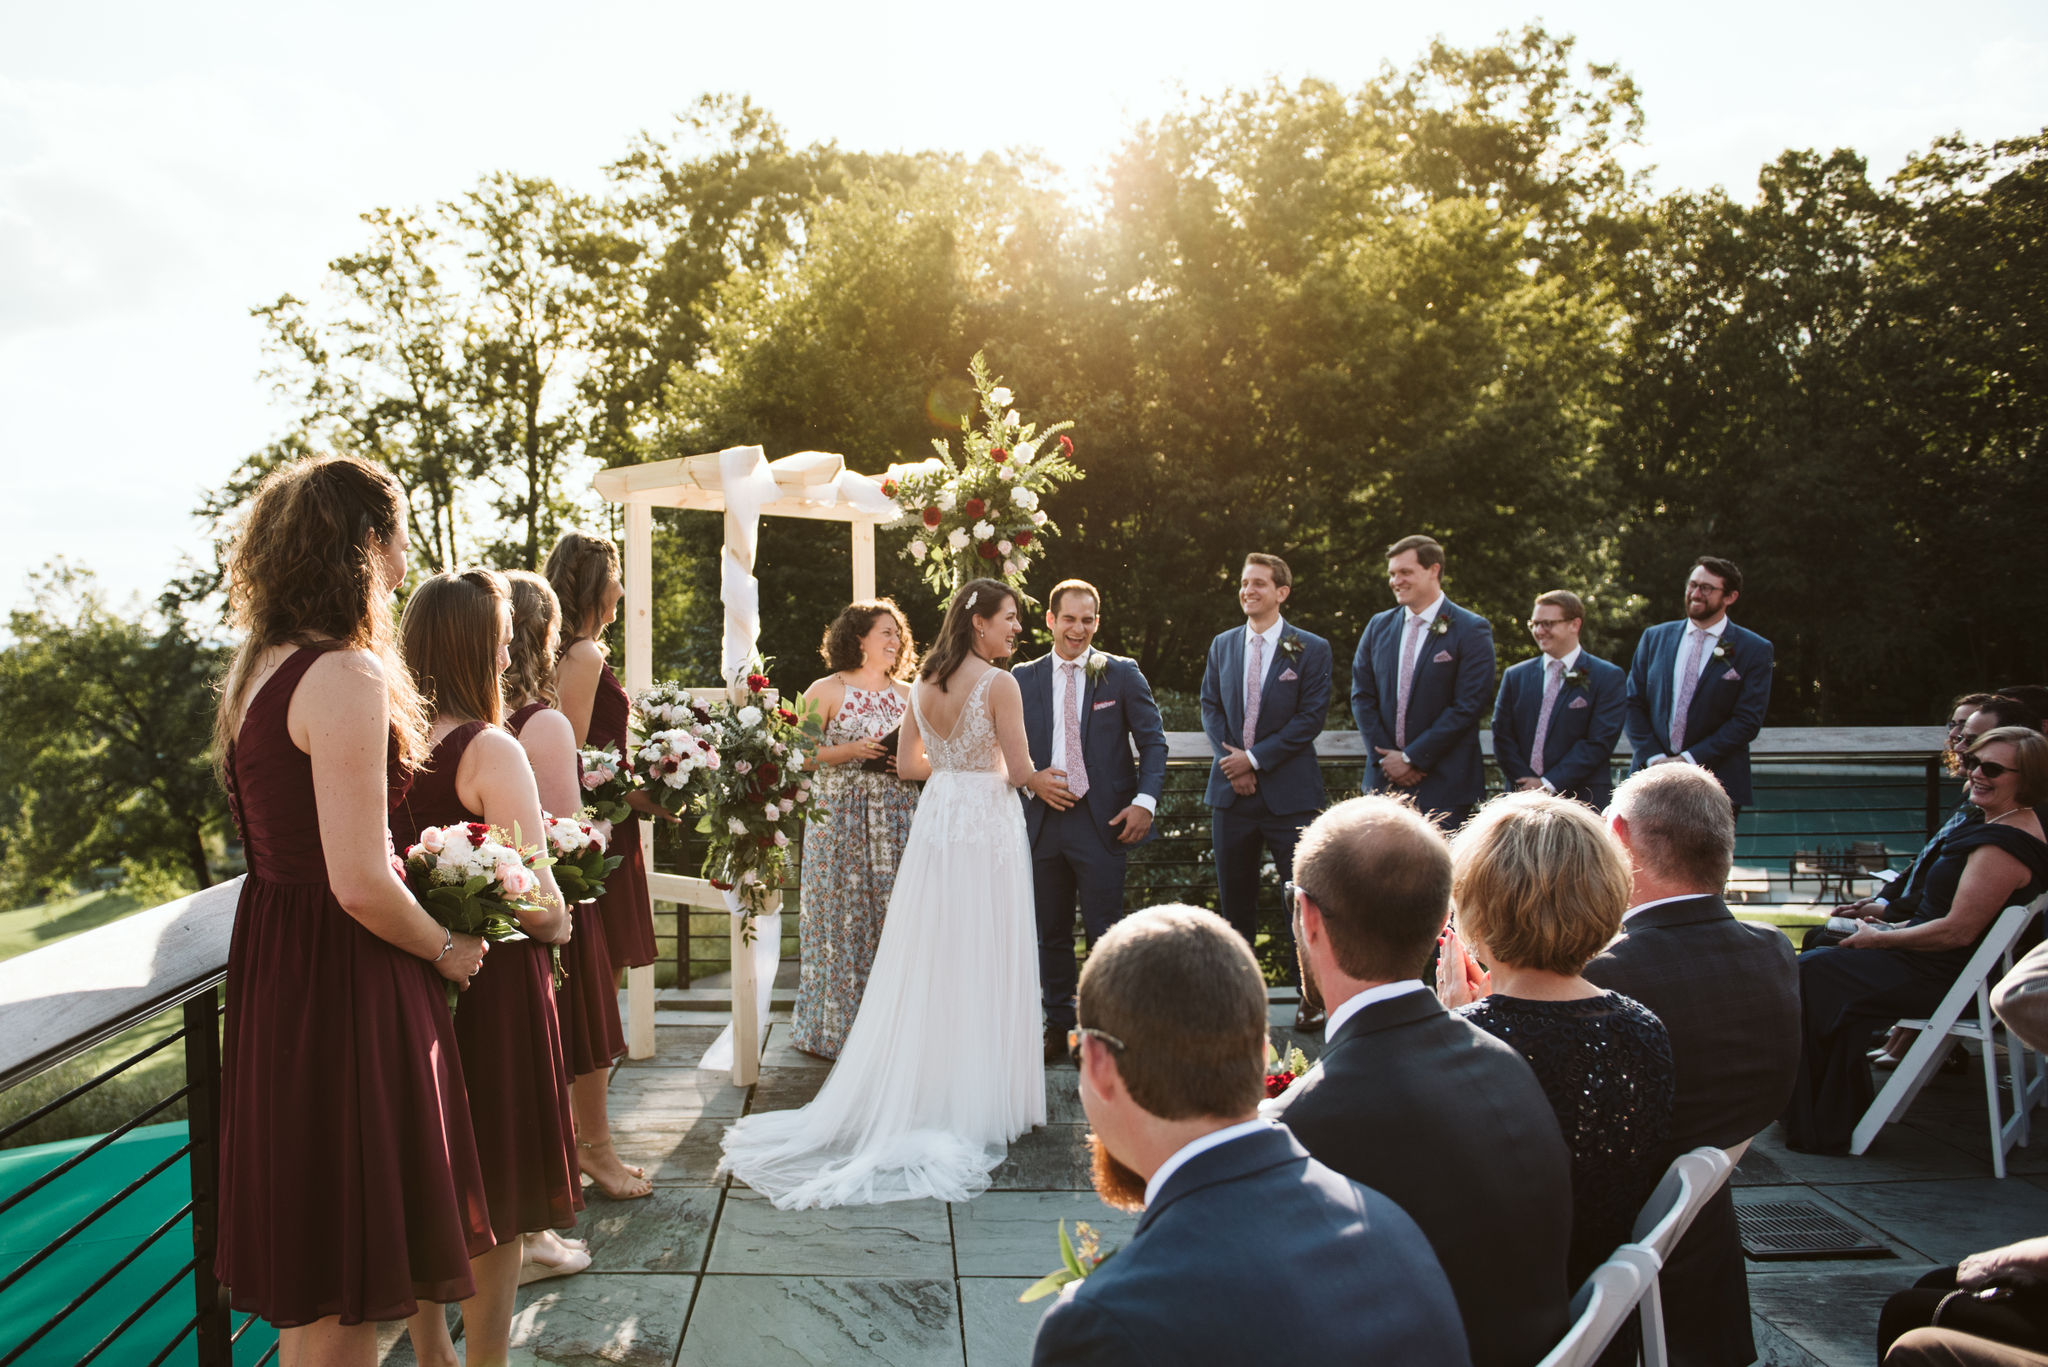 Phoenix Maryland, Baltimore Wedding Photographer, Eagle's Nest Country Club, Classic, Romantic, Bride and Groom at Altar Surrounded by Family and Friends, BHLDN Dress